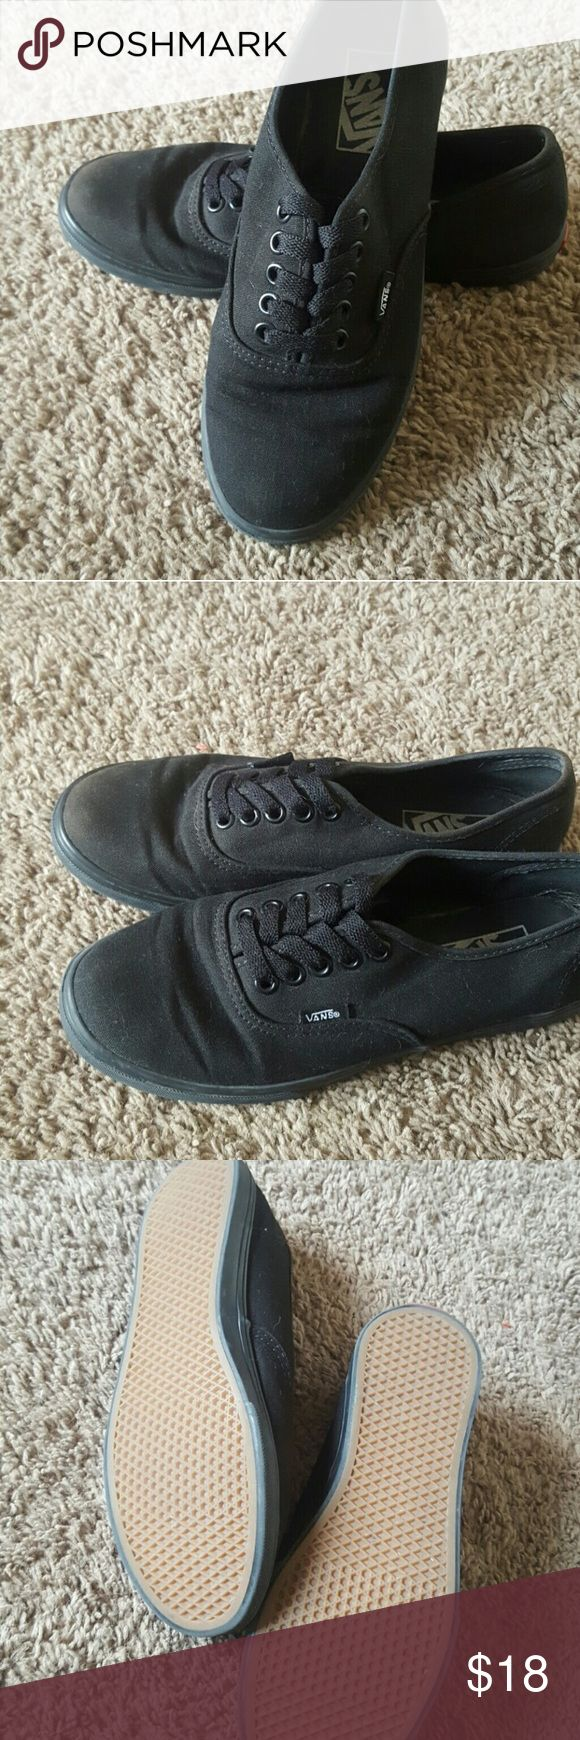 Low profile all black vans Low profile all black vans. Woman's size 7.5 men's size 6. Worn a handful of times. Great condition. Vans Shoes Sneakers